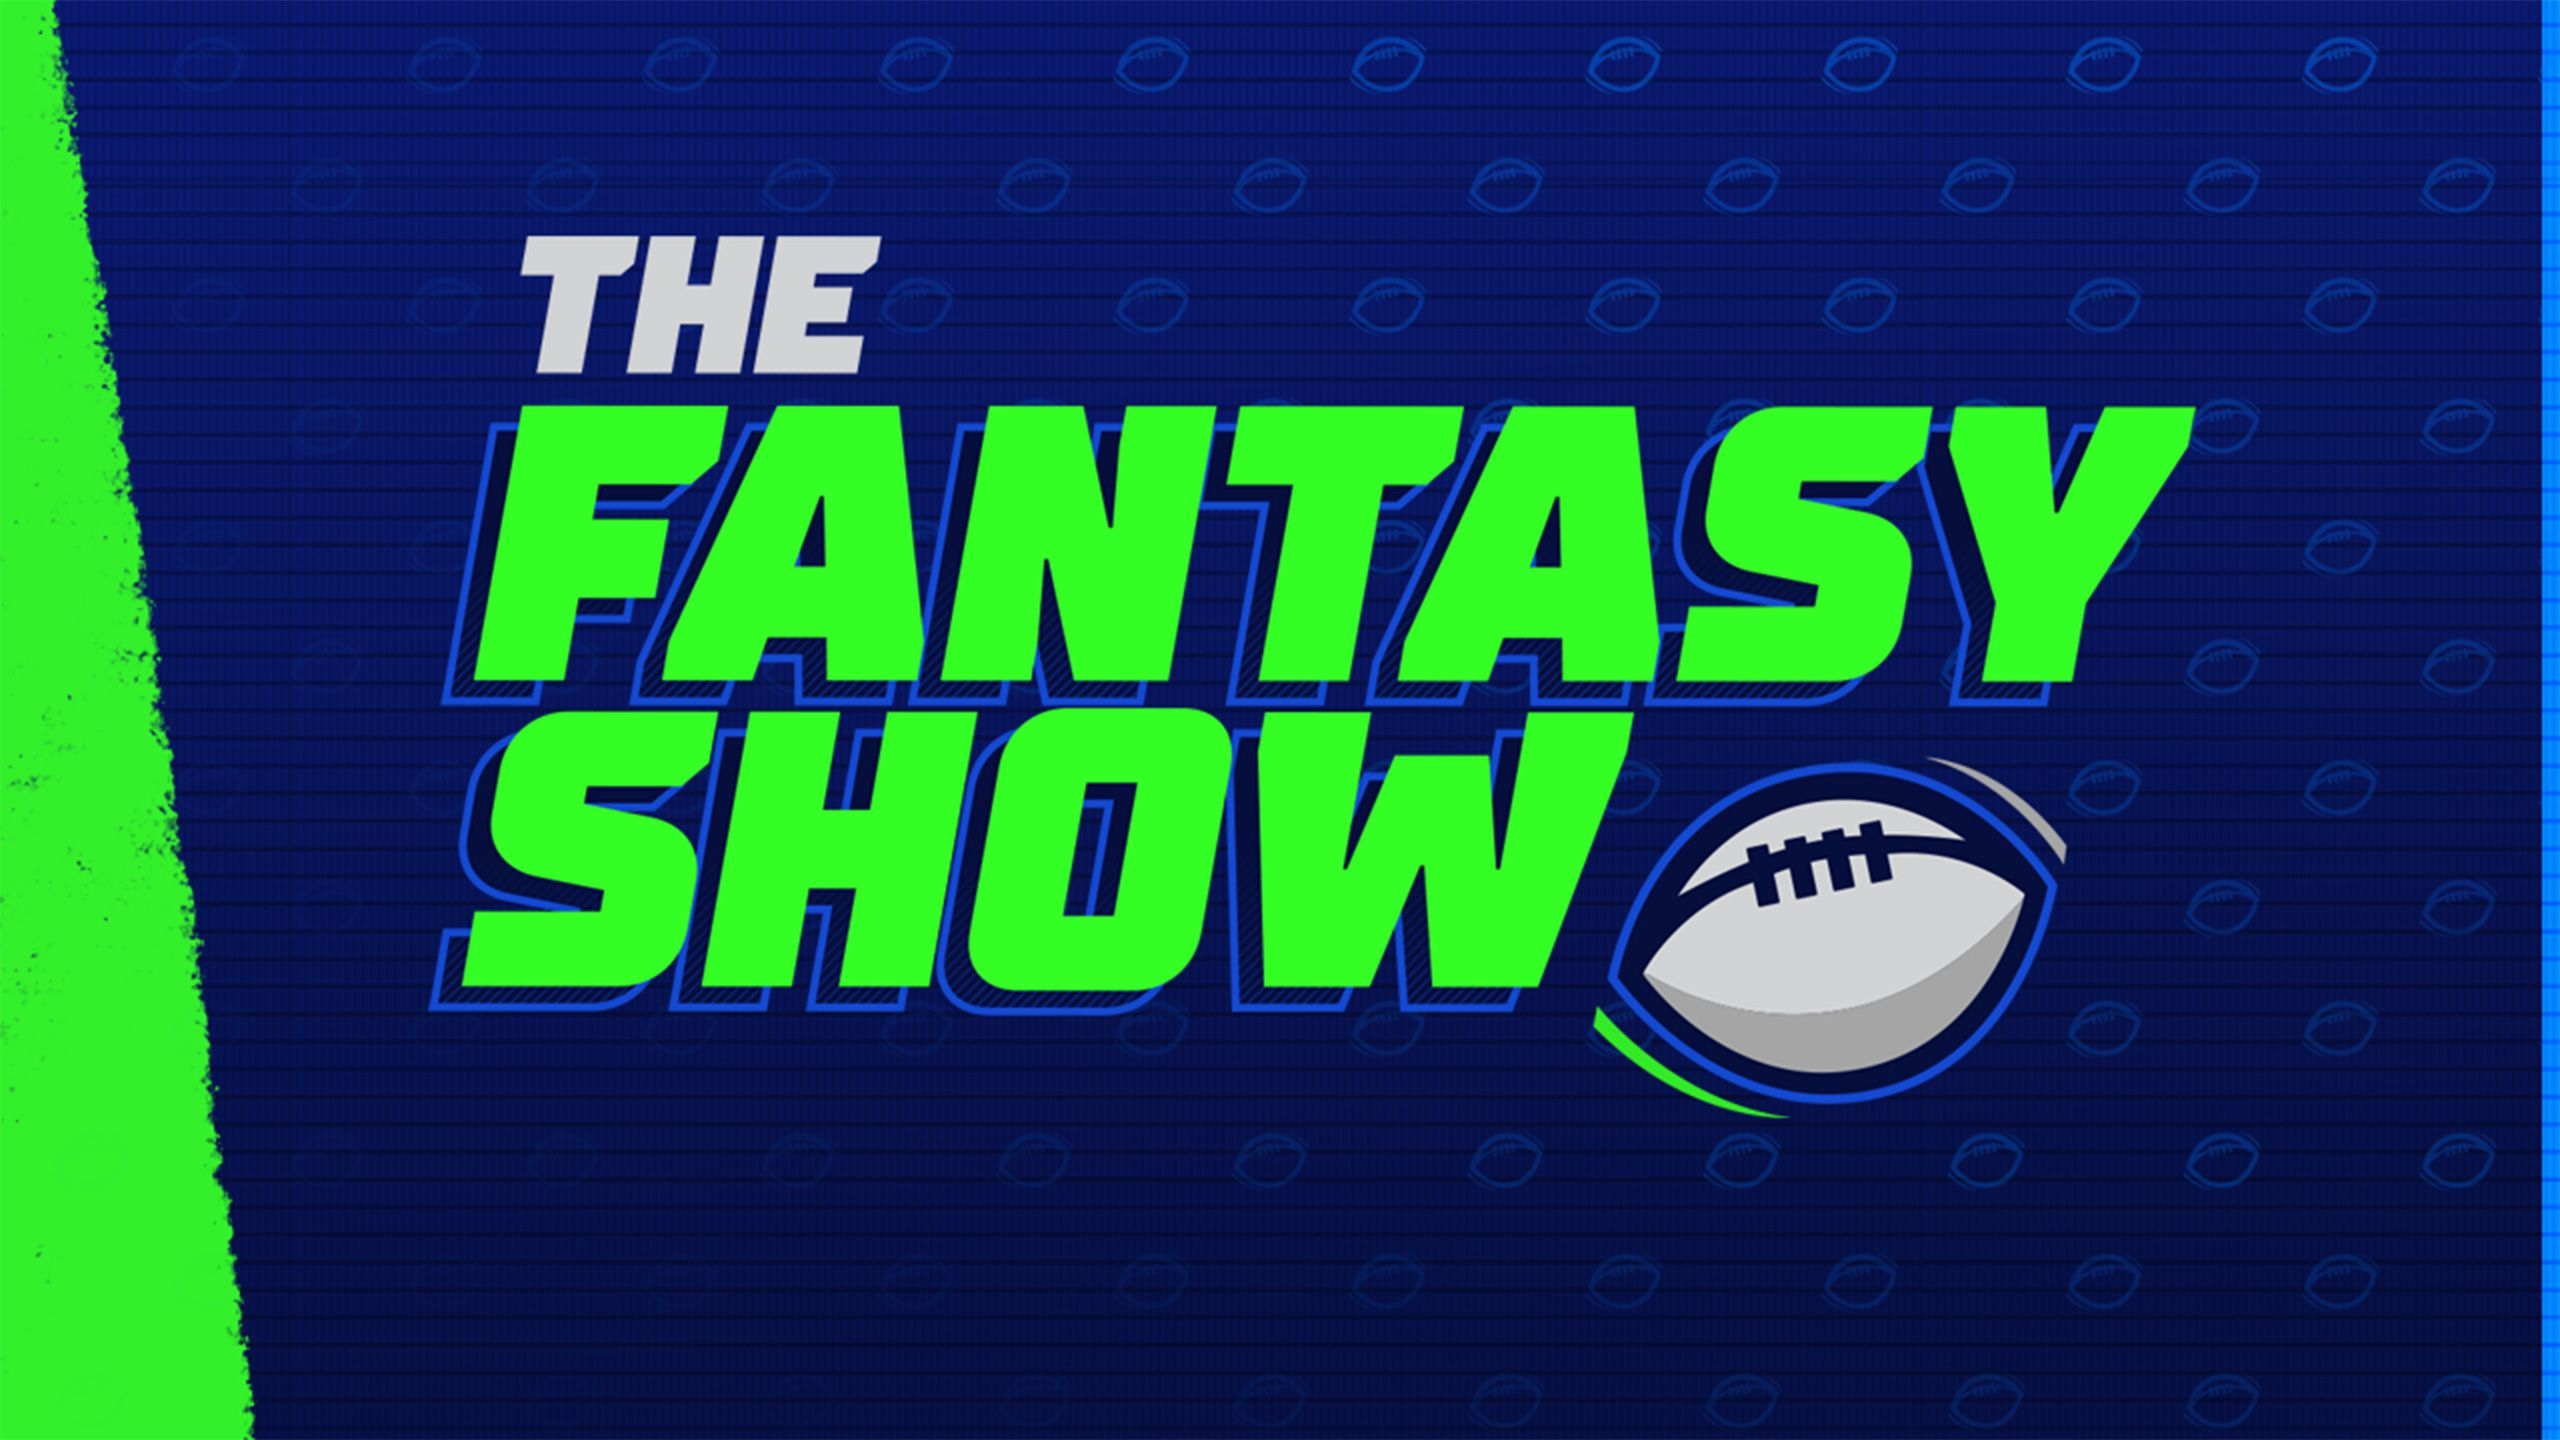 Wed, 12/13 - The Fantasy Show presented by E*Trade